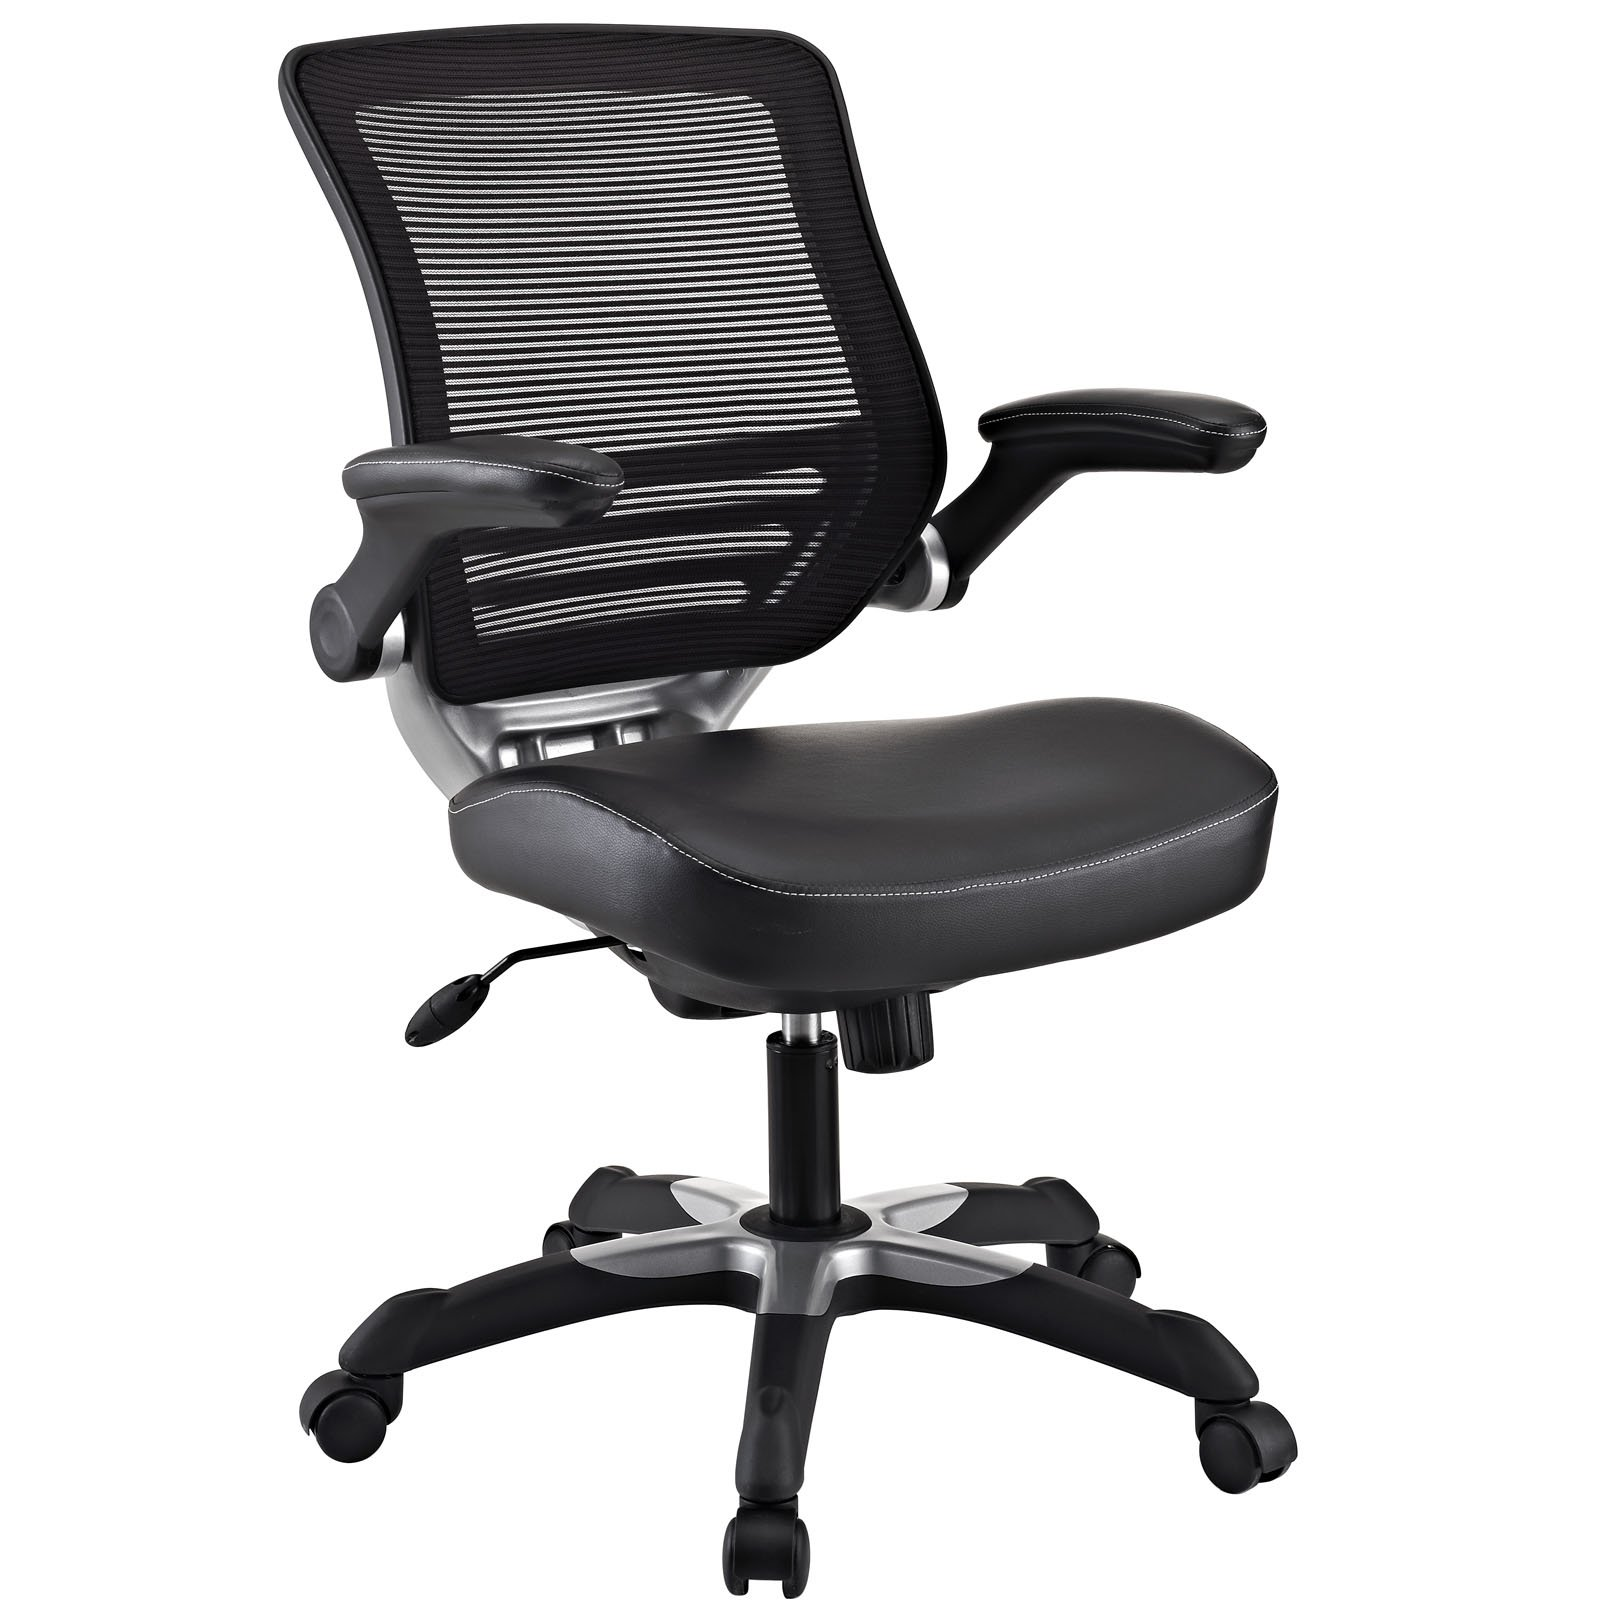 Modway Edge Mesh Back and Black Vinyl Seat Office Chair With Flip-Up Arms - Ergonomic Desk And Computer Chair by Modway